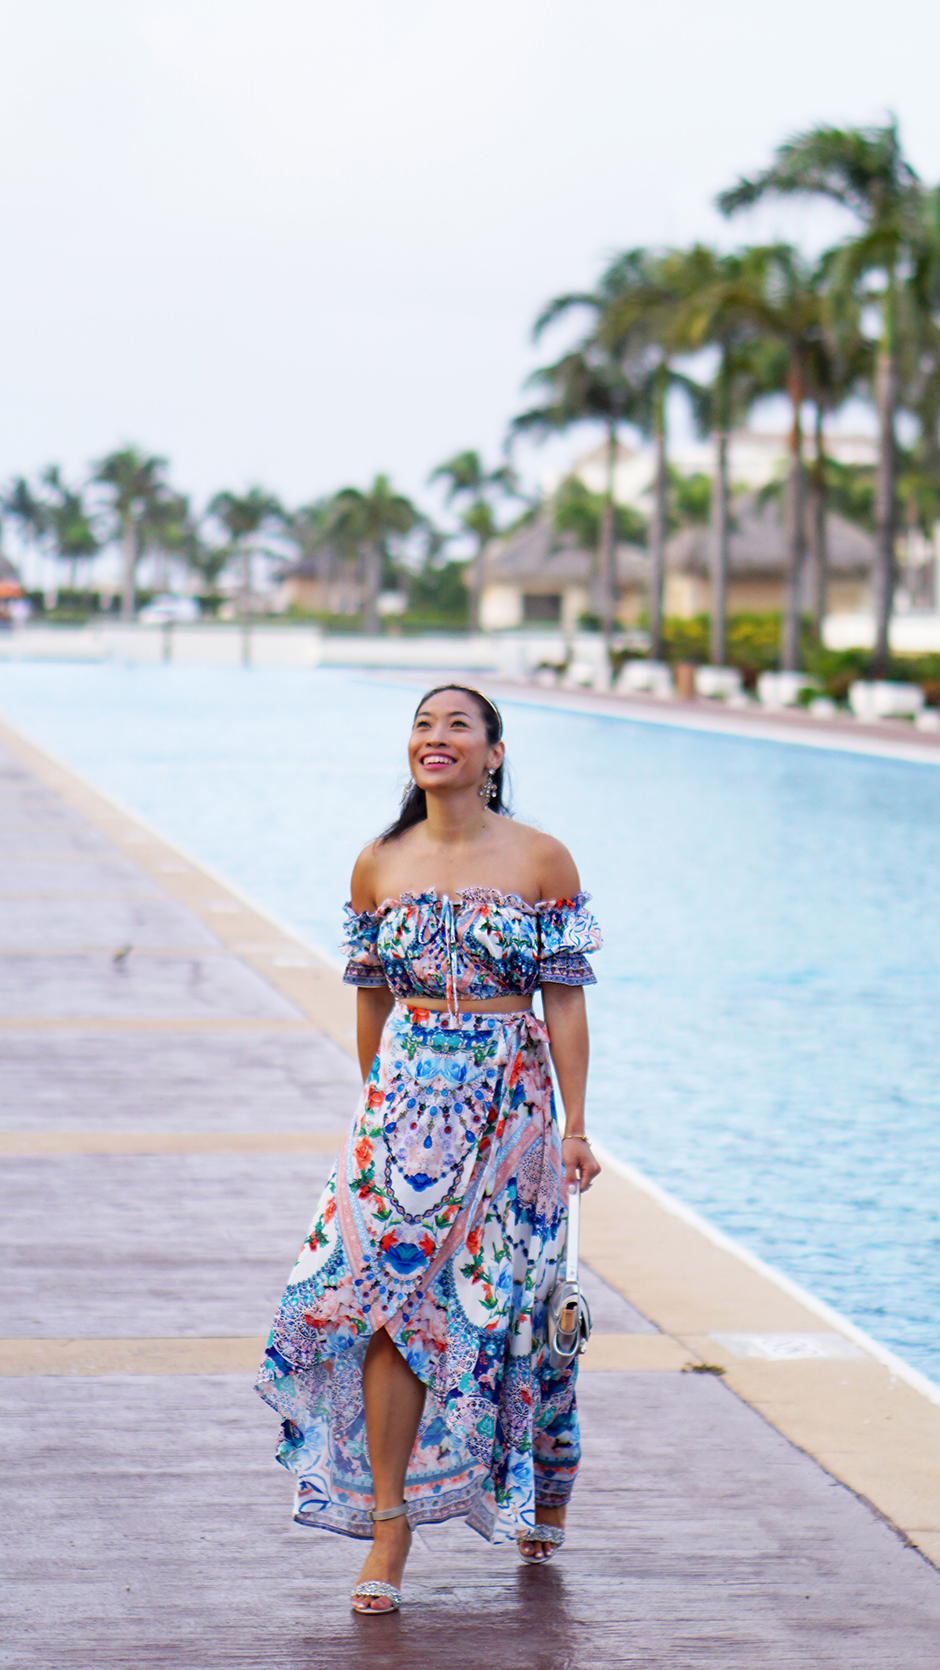 Scarf Print Set Outfit Ideas Inspiration - Making the Most of an All Inclusive Resort and Holiday #dolcegabbana #inspiration #outfitideas #scarfprint #printtrend #summeroutfit #outfitinspo #outfitideas #OOTD #resortwear #readytowear #streetstyle #beachstyle #outfitinspiration #fashionblogger #styleblogger #OOTN #outfitideas #styleideas #runwayinspired #fashion #streetfashion #travelinspo #travelideas #travel #puntacana #hardrock #travelwomen